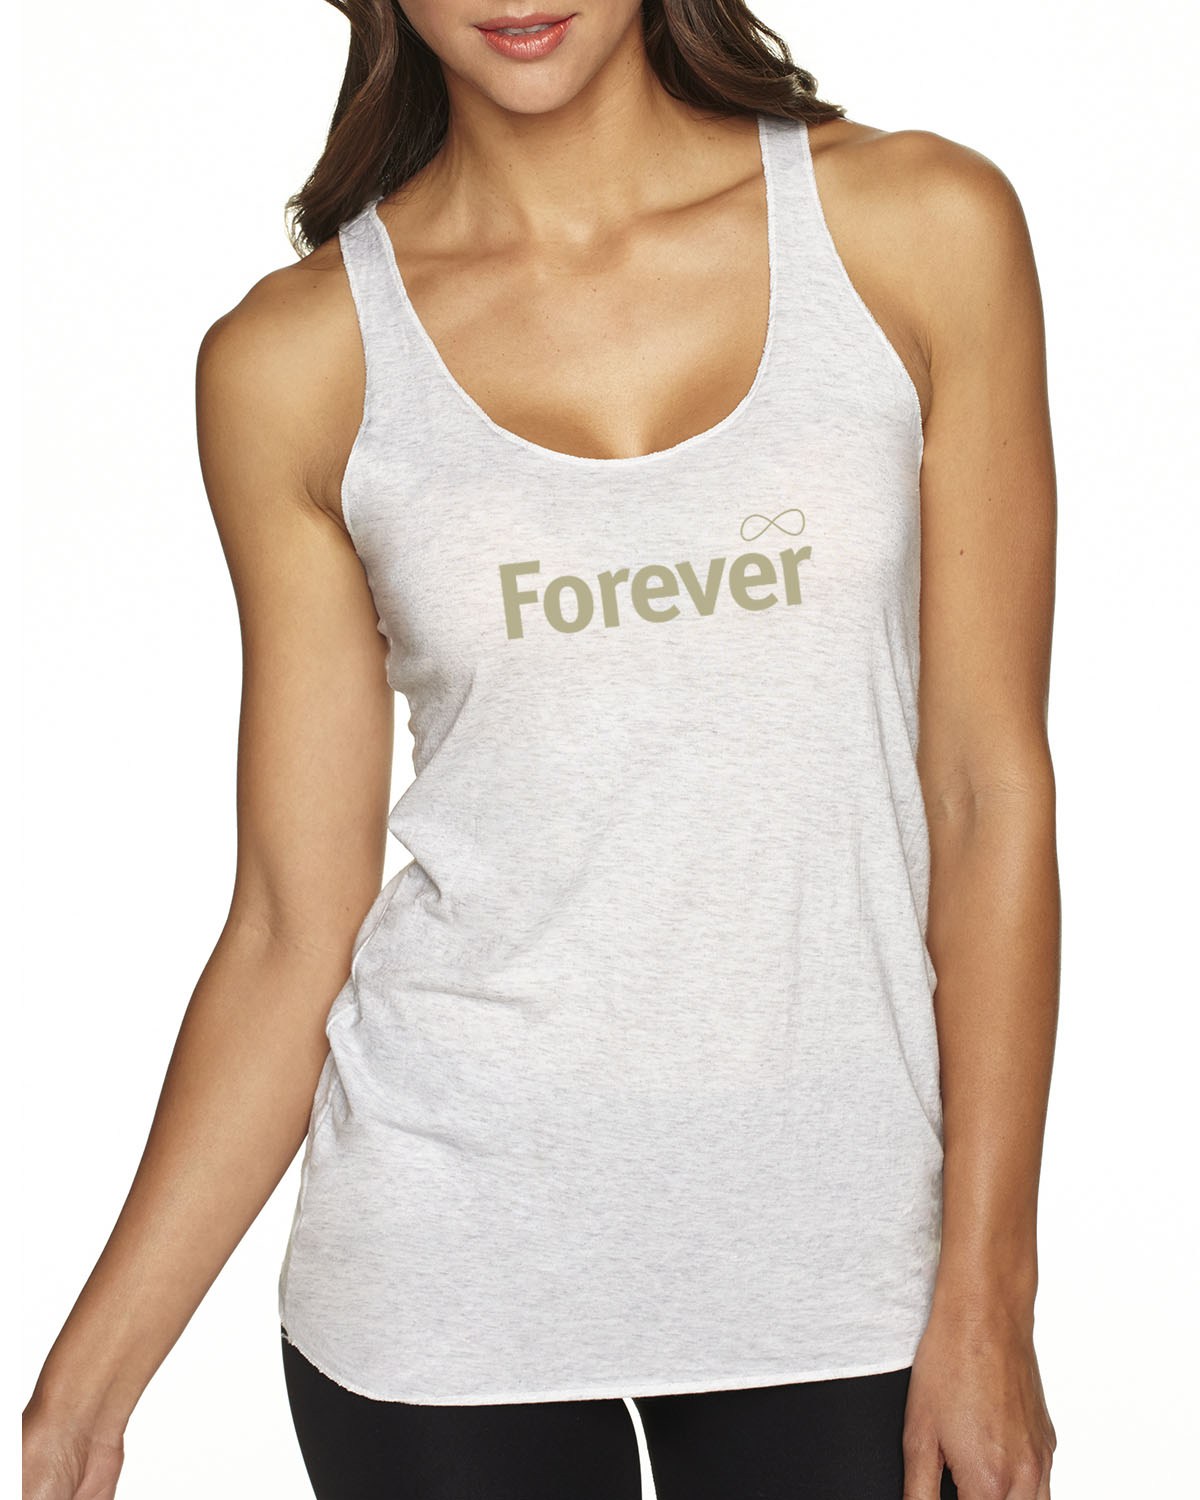 Inspirational racer-back volleyball tank top for women (Heather Gray)